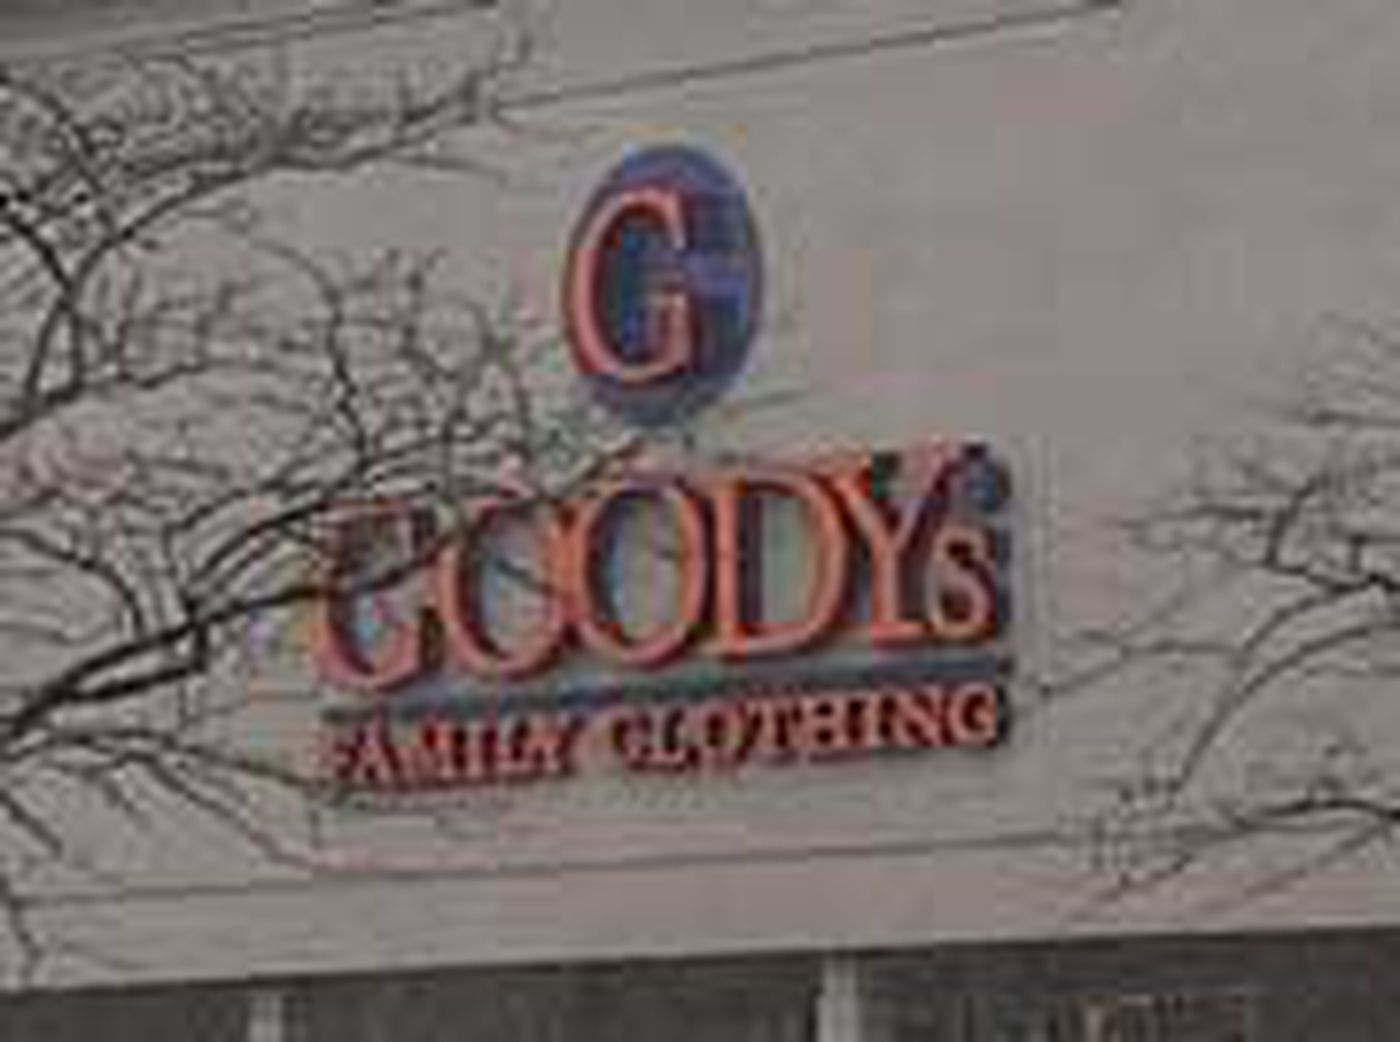 127a67b82ec Goody s announces closure of clothing store chain